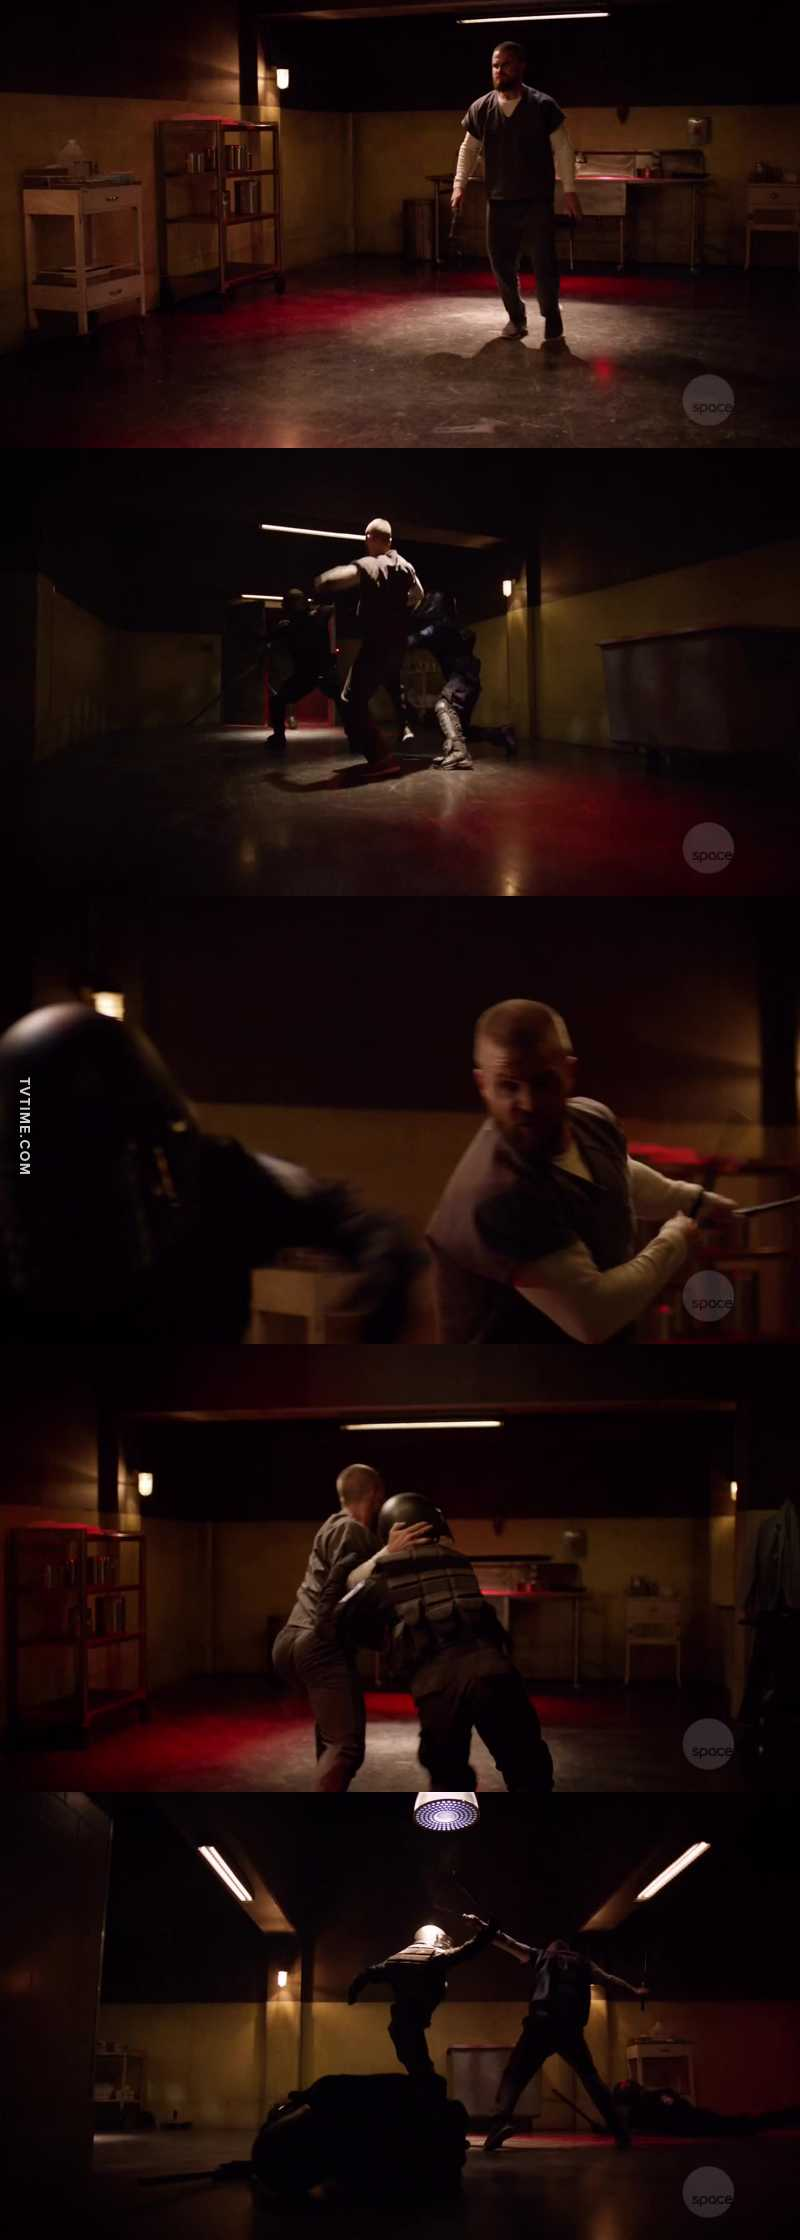 Kickass episode!! Oliver is back baby, kicking ass and taking names!